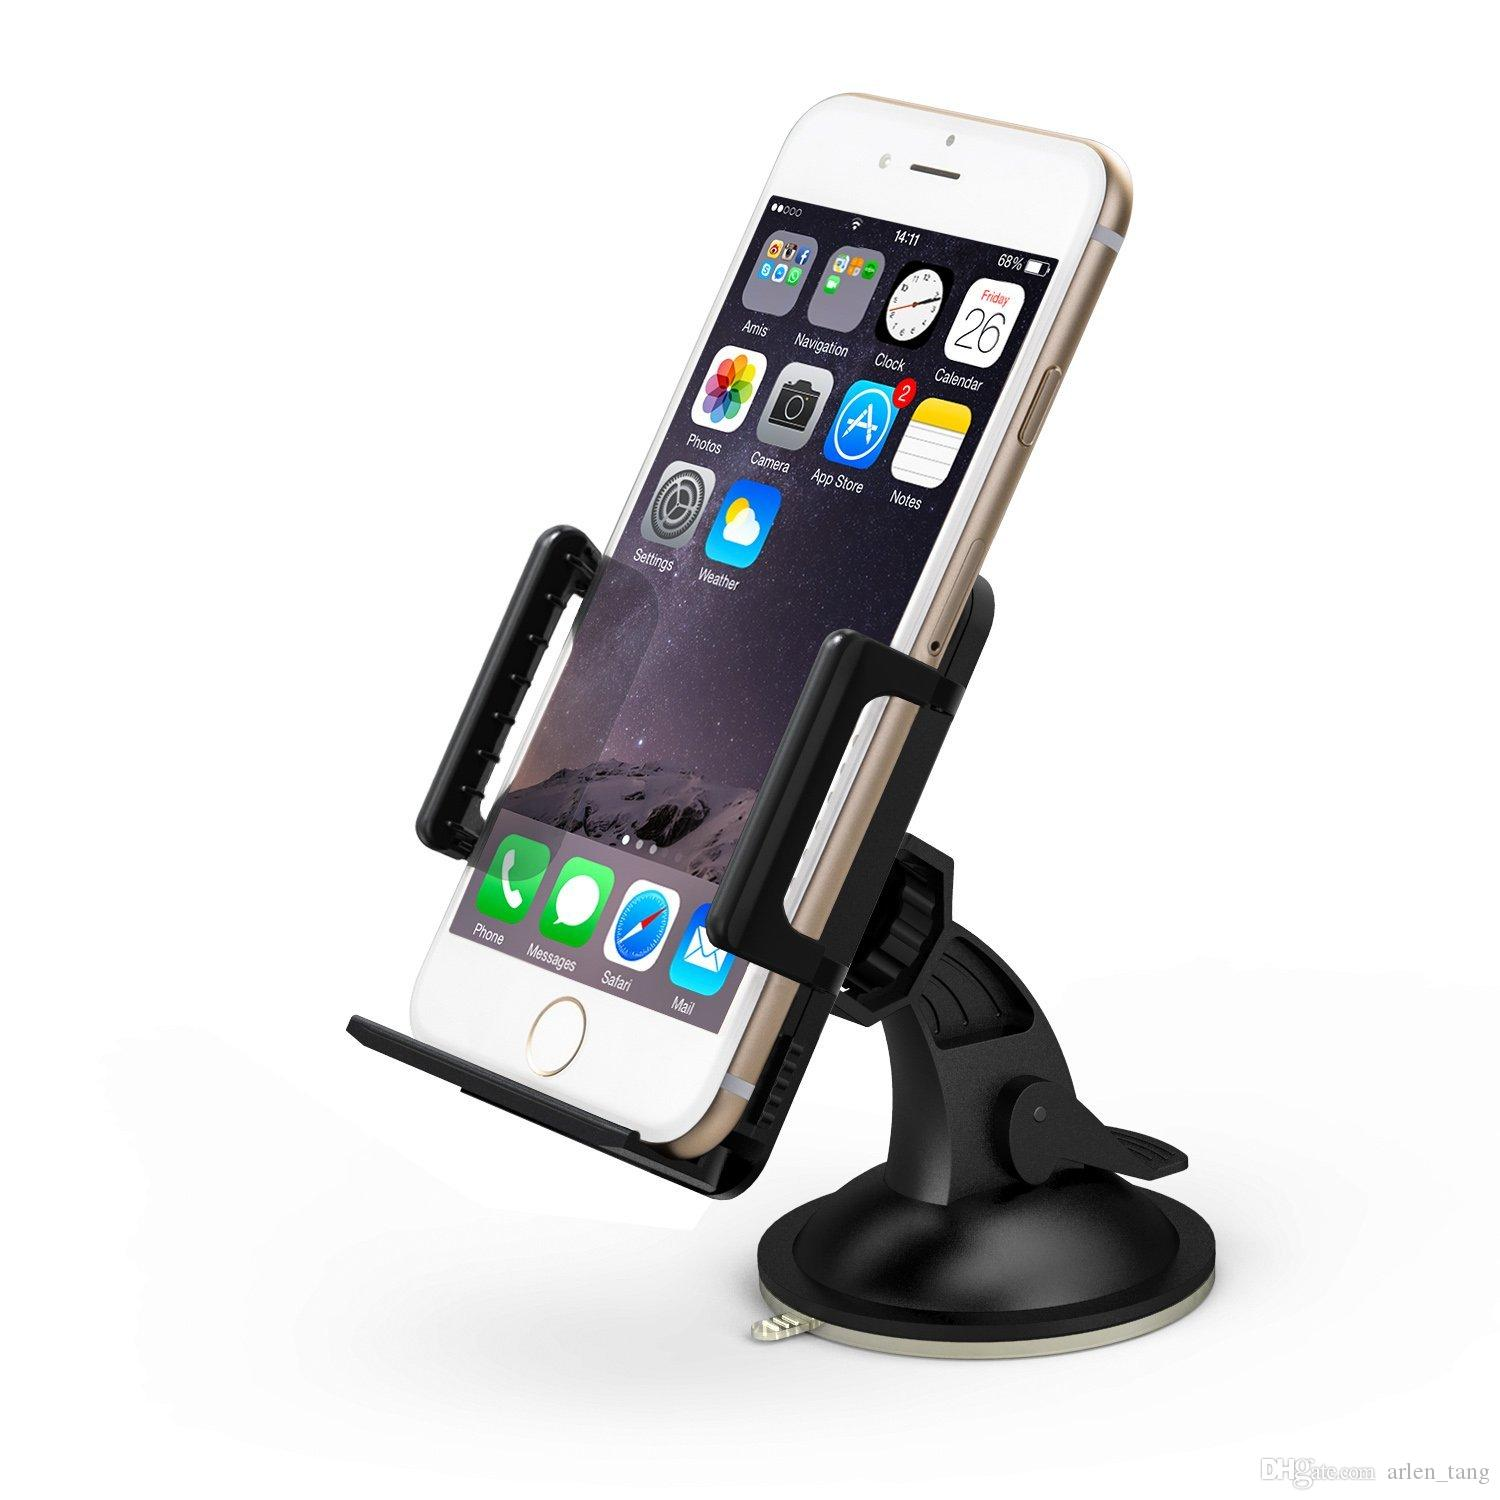 Cool universal windshield dashboard car mount cradle holder for iphone 6 5s 5c 5 4s 4 3gs samsung galaxy note 3 note 2 s4 s3 mega lumia spigen cell phone